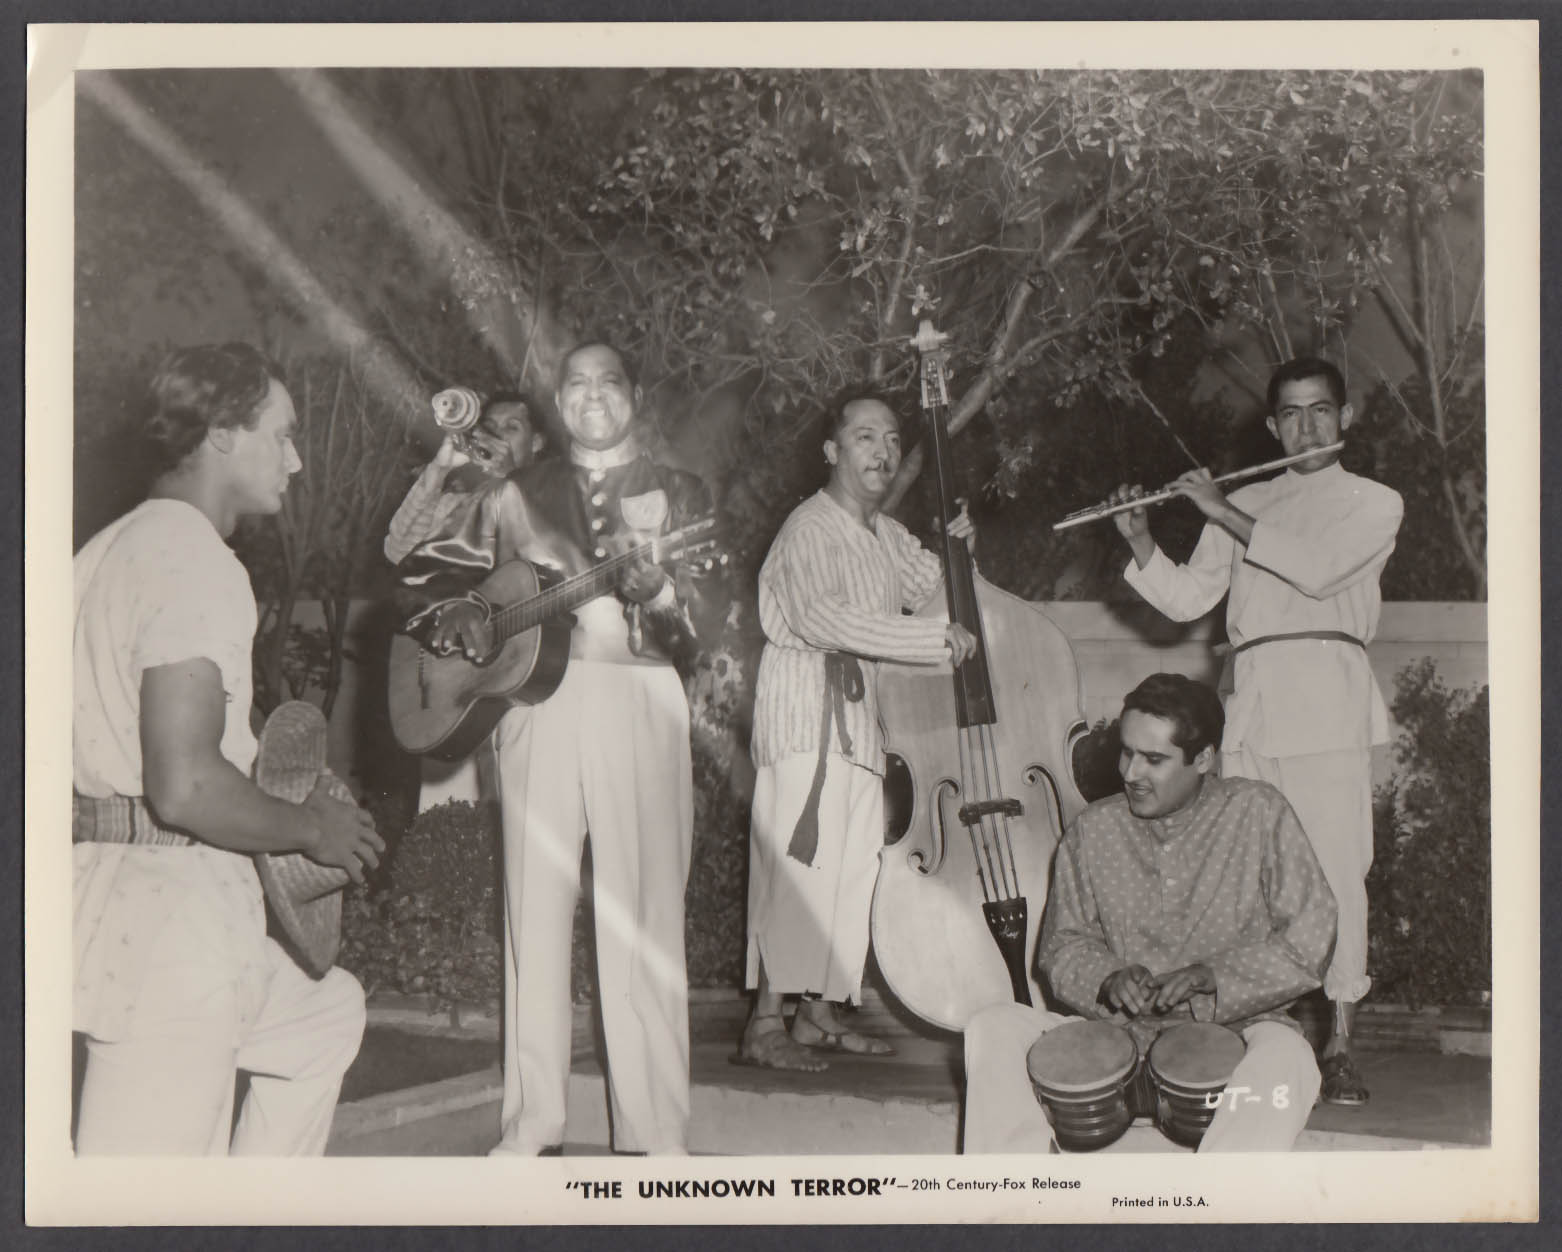 Sir Lancelot band in The Unknown Terror 8x10 publicity photo 1957